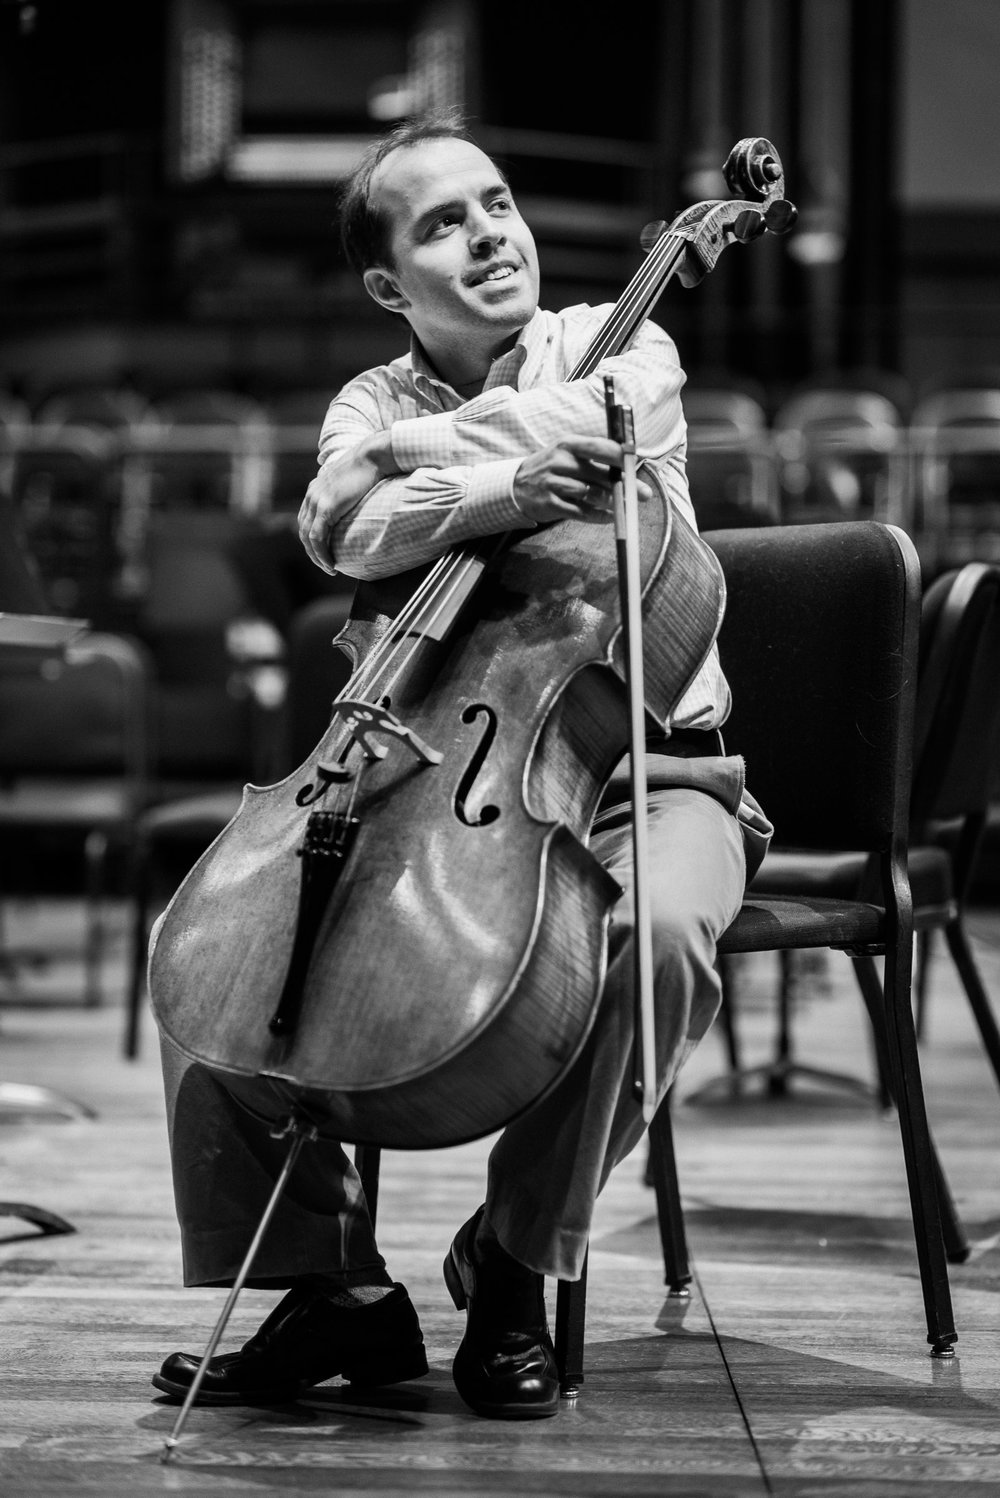 efe_balktacigil_seattle_symphony_portrait_brandon_patoc_photographer_model_0001.jpg